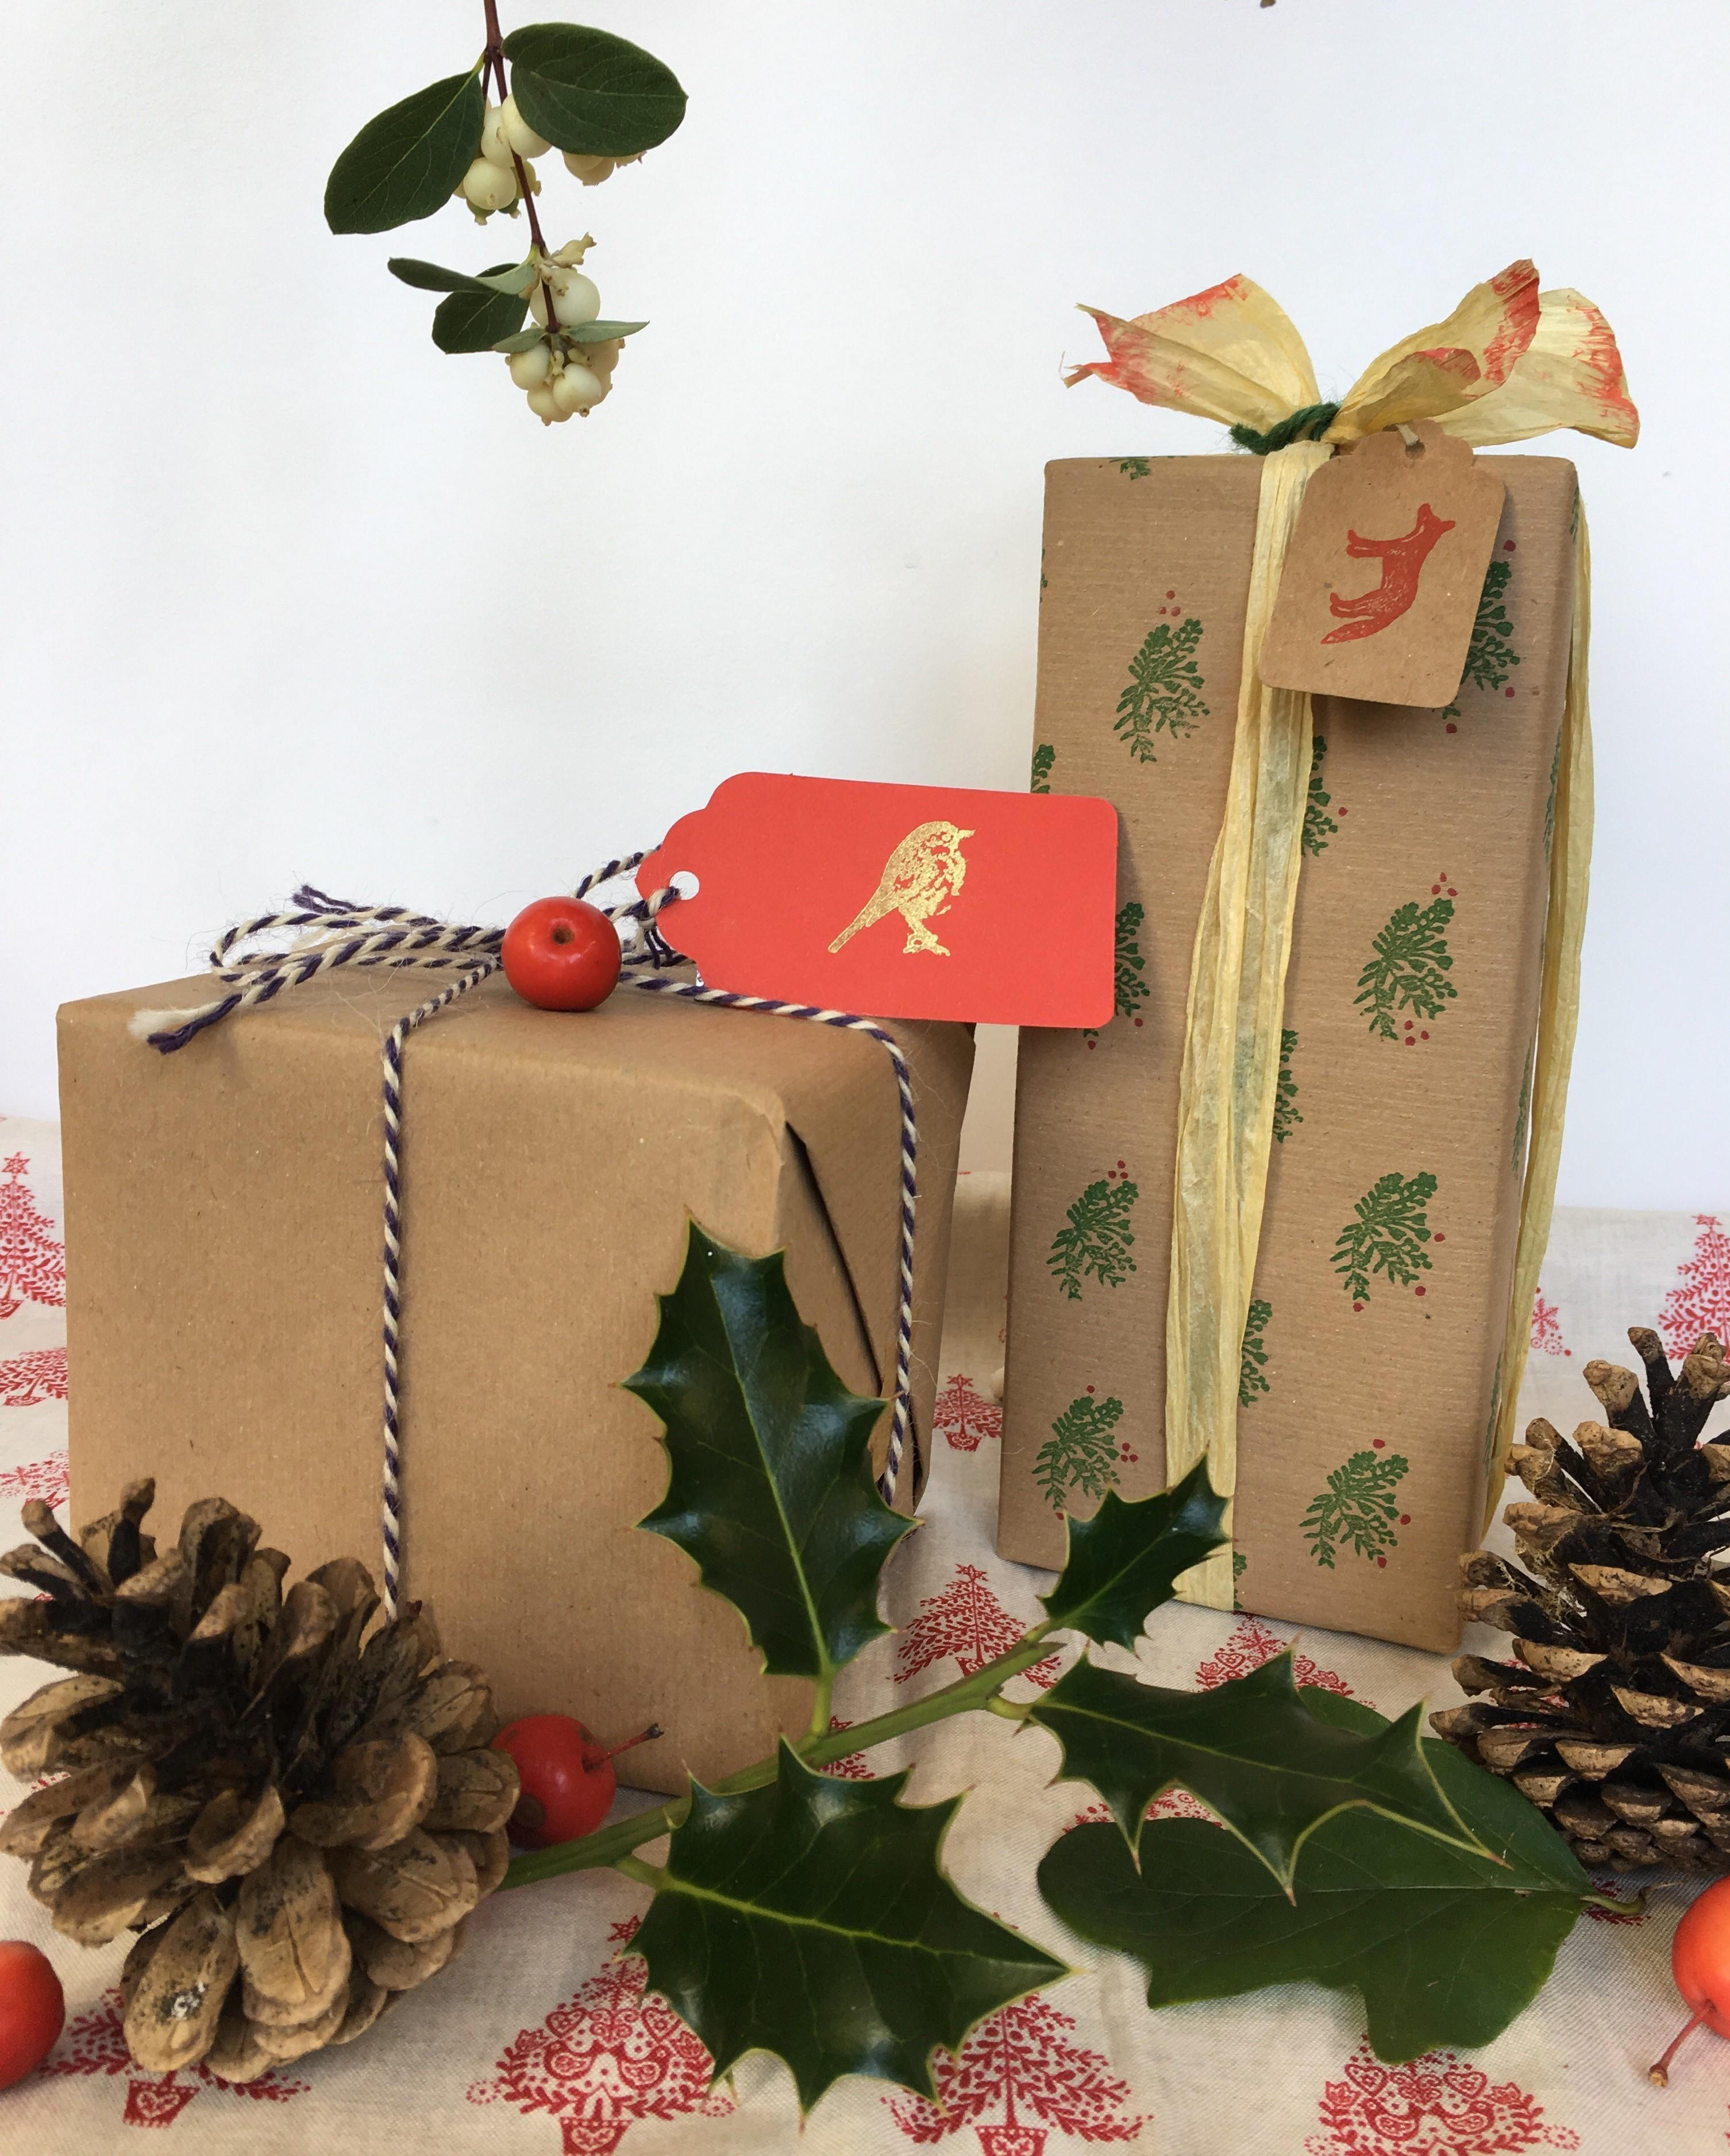 Image shows to boxes wrapped with kraft paper and decorated with string, ribbons and natural items such as holly and pines